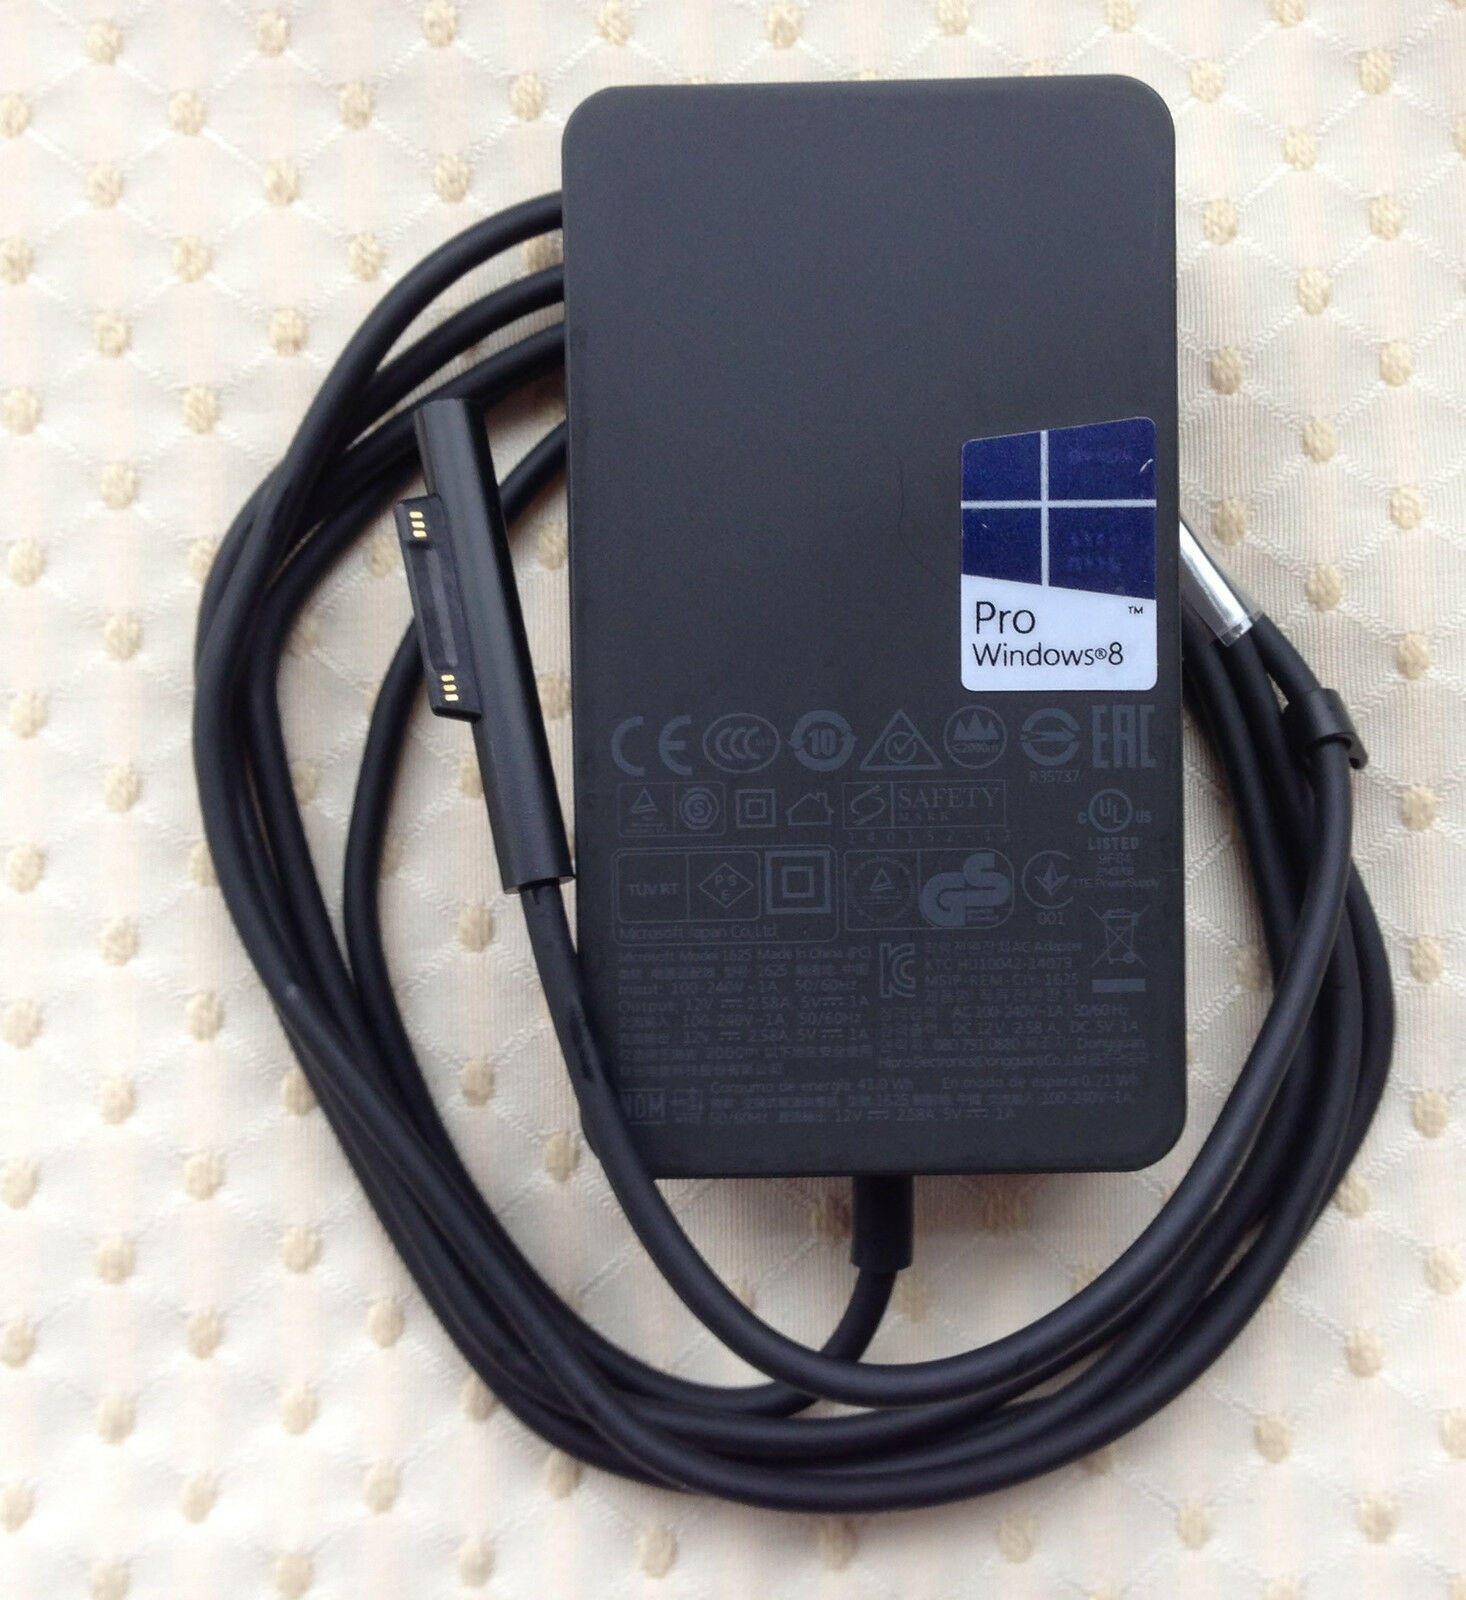 Microsoft 3PU2-00001 AC Adapter Power Supply Cord Cable Charger Geneuine Original